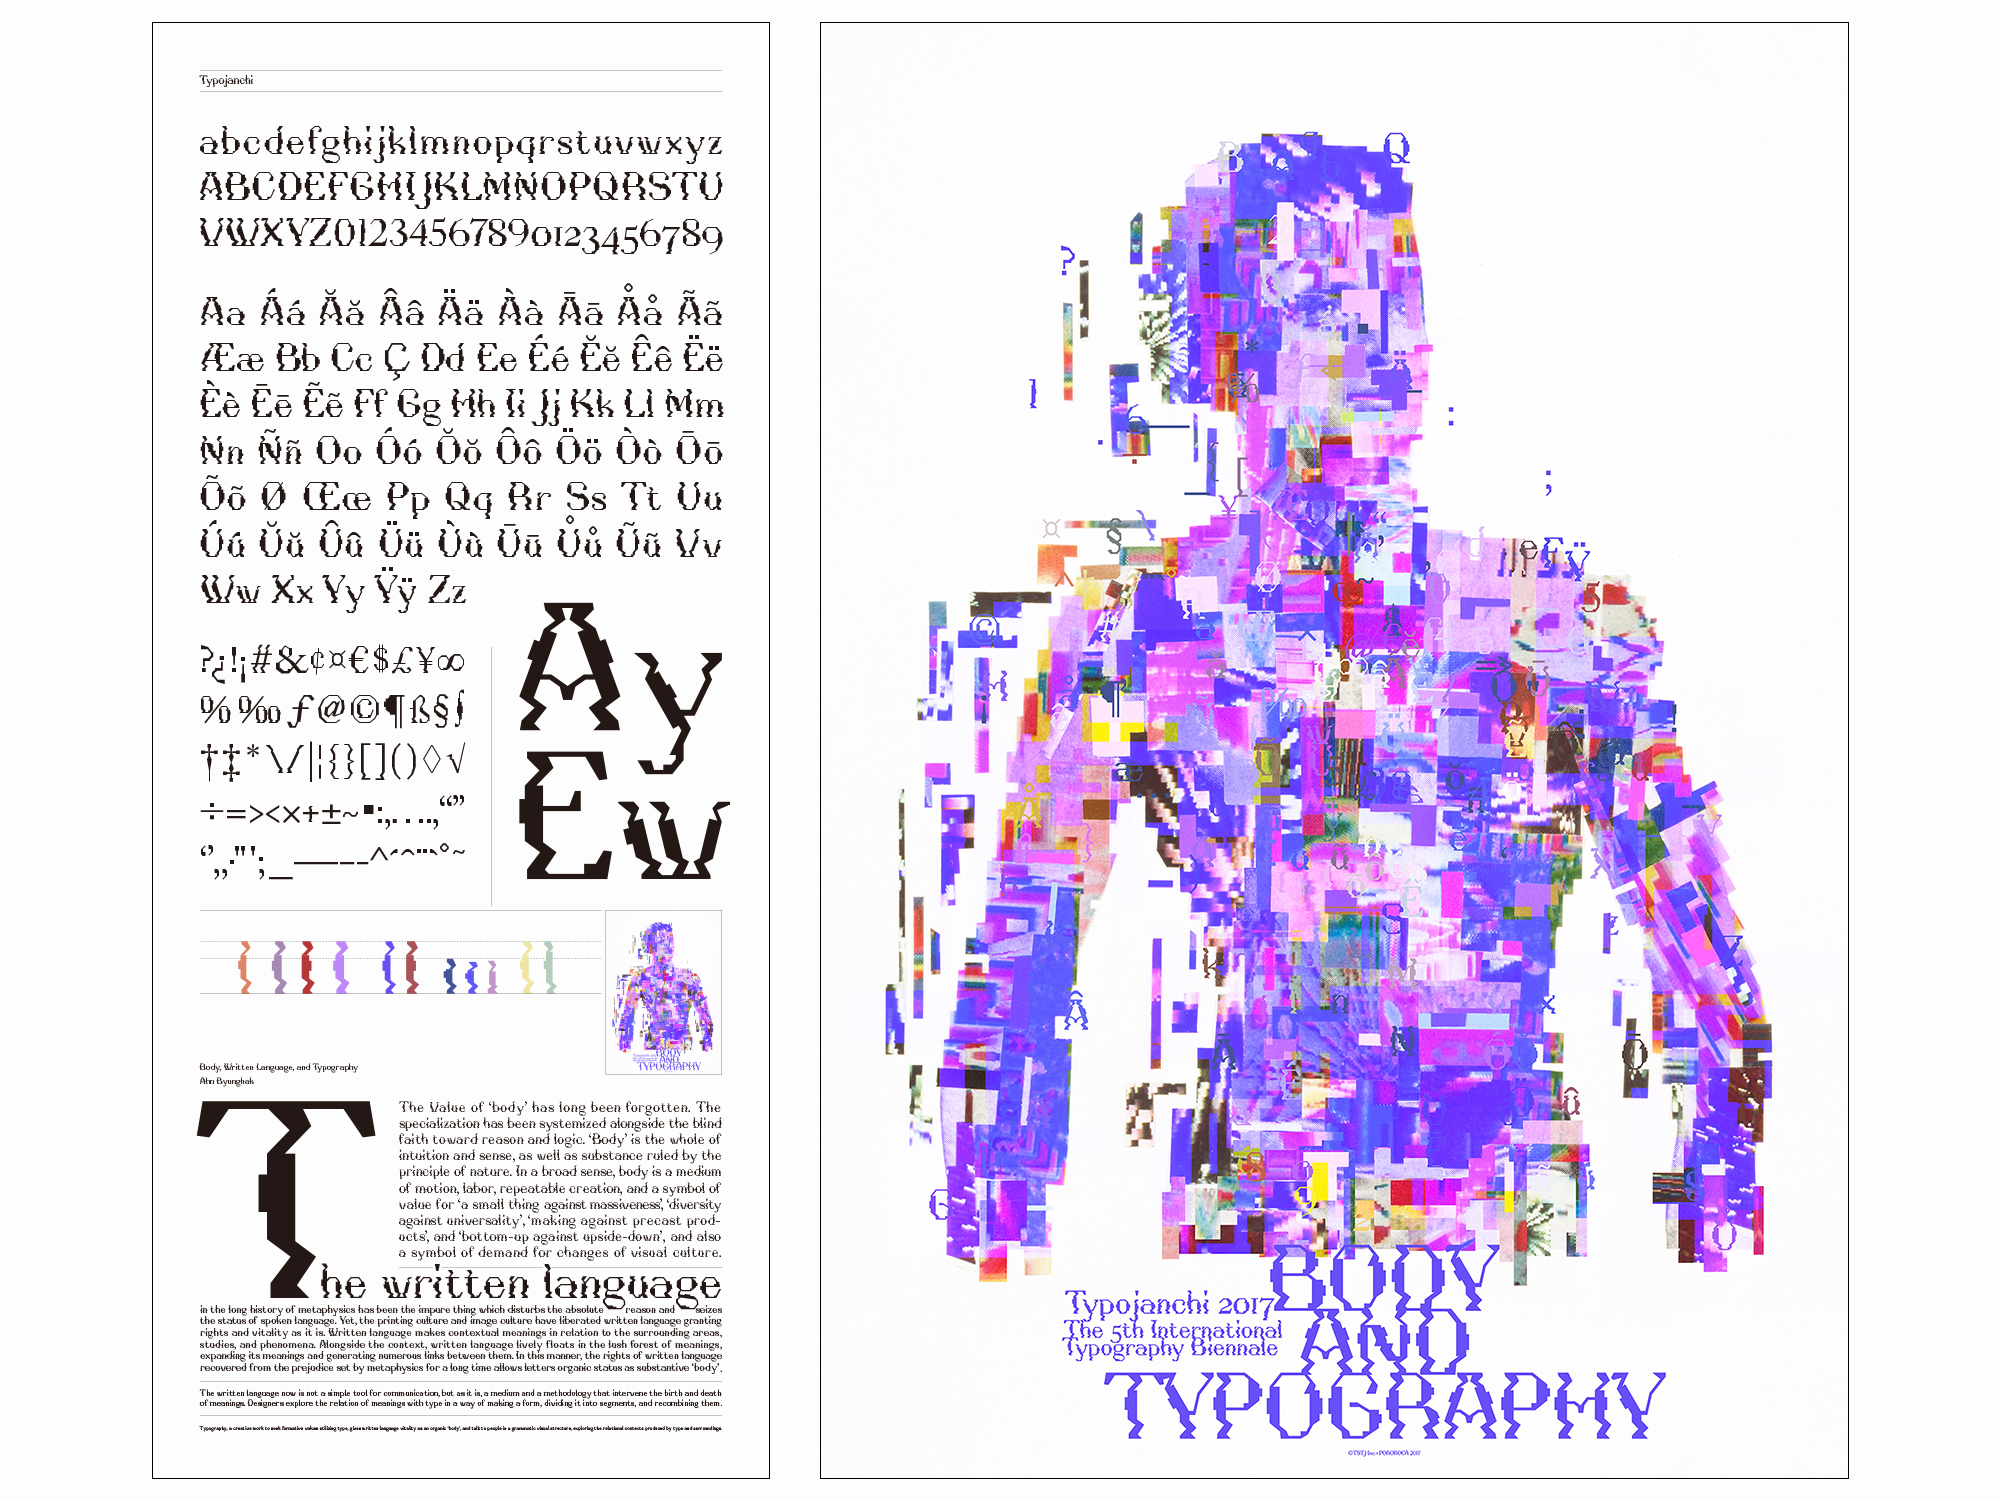 Typojanchi 2017: The 5th International Typography Biennale 9.15 – 10.29 Typojachi 2017 のための新作ポスターとオリジナルフォント